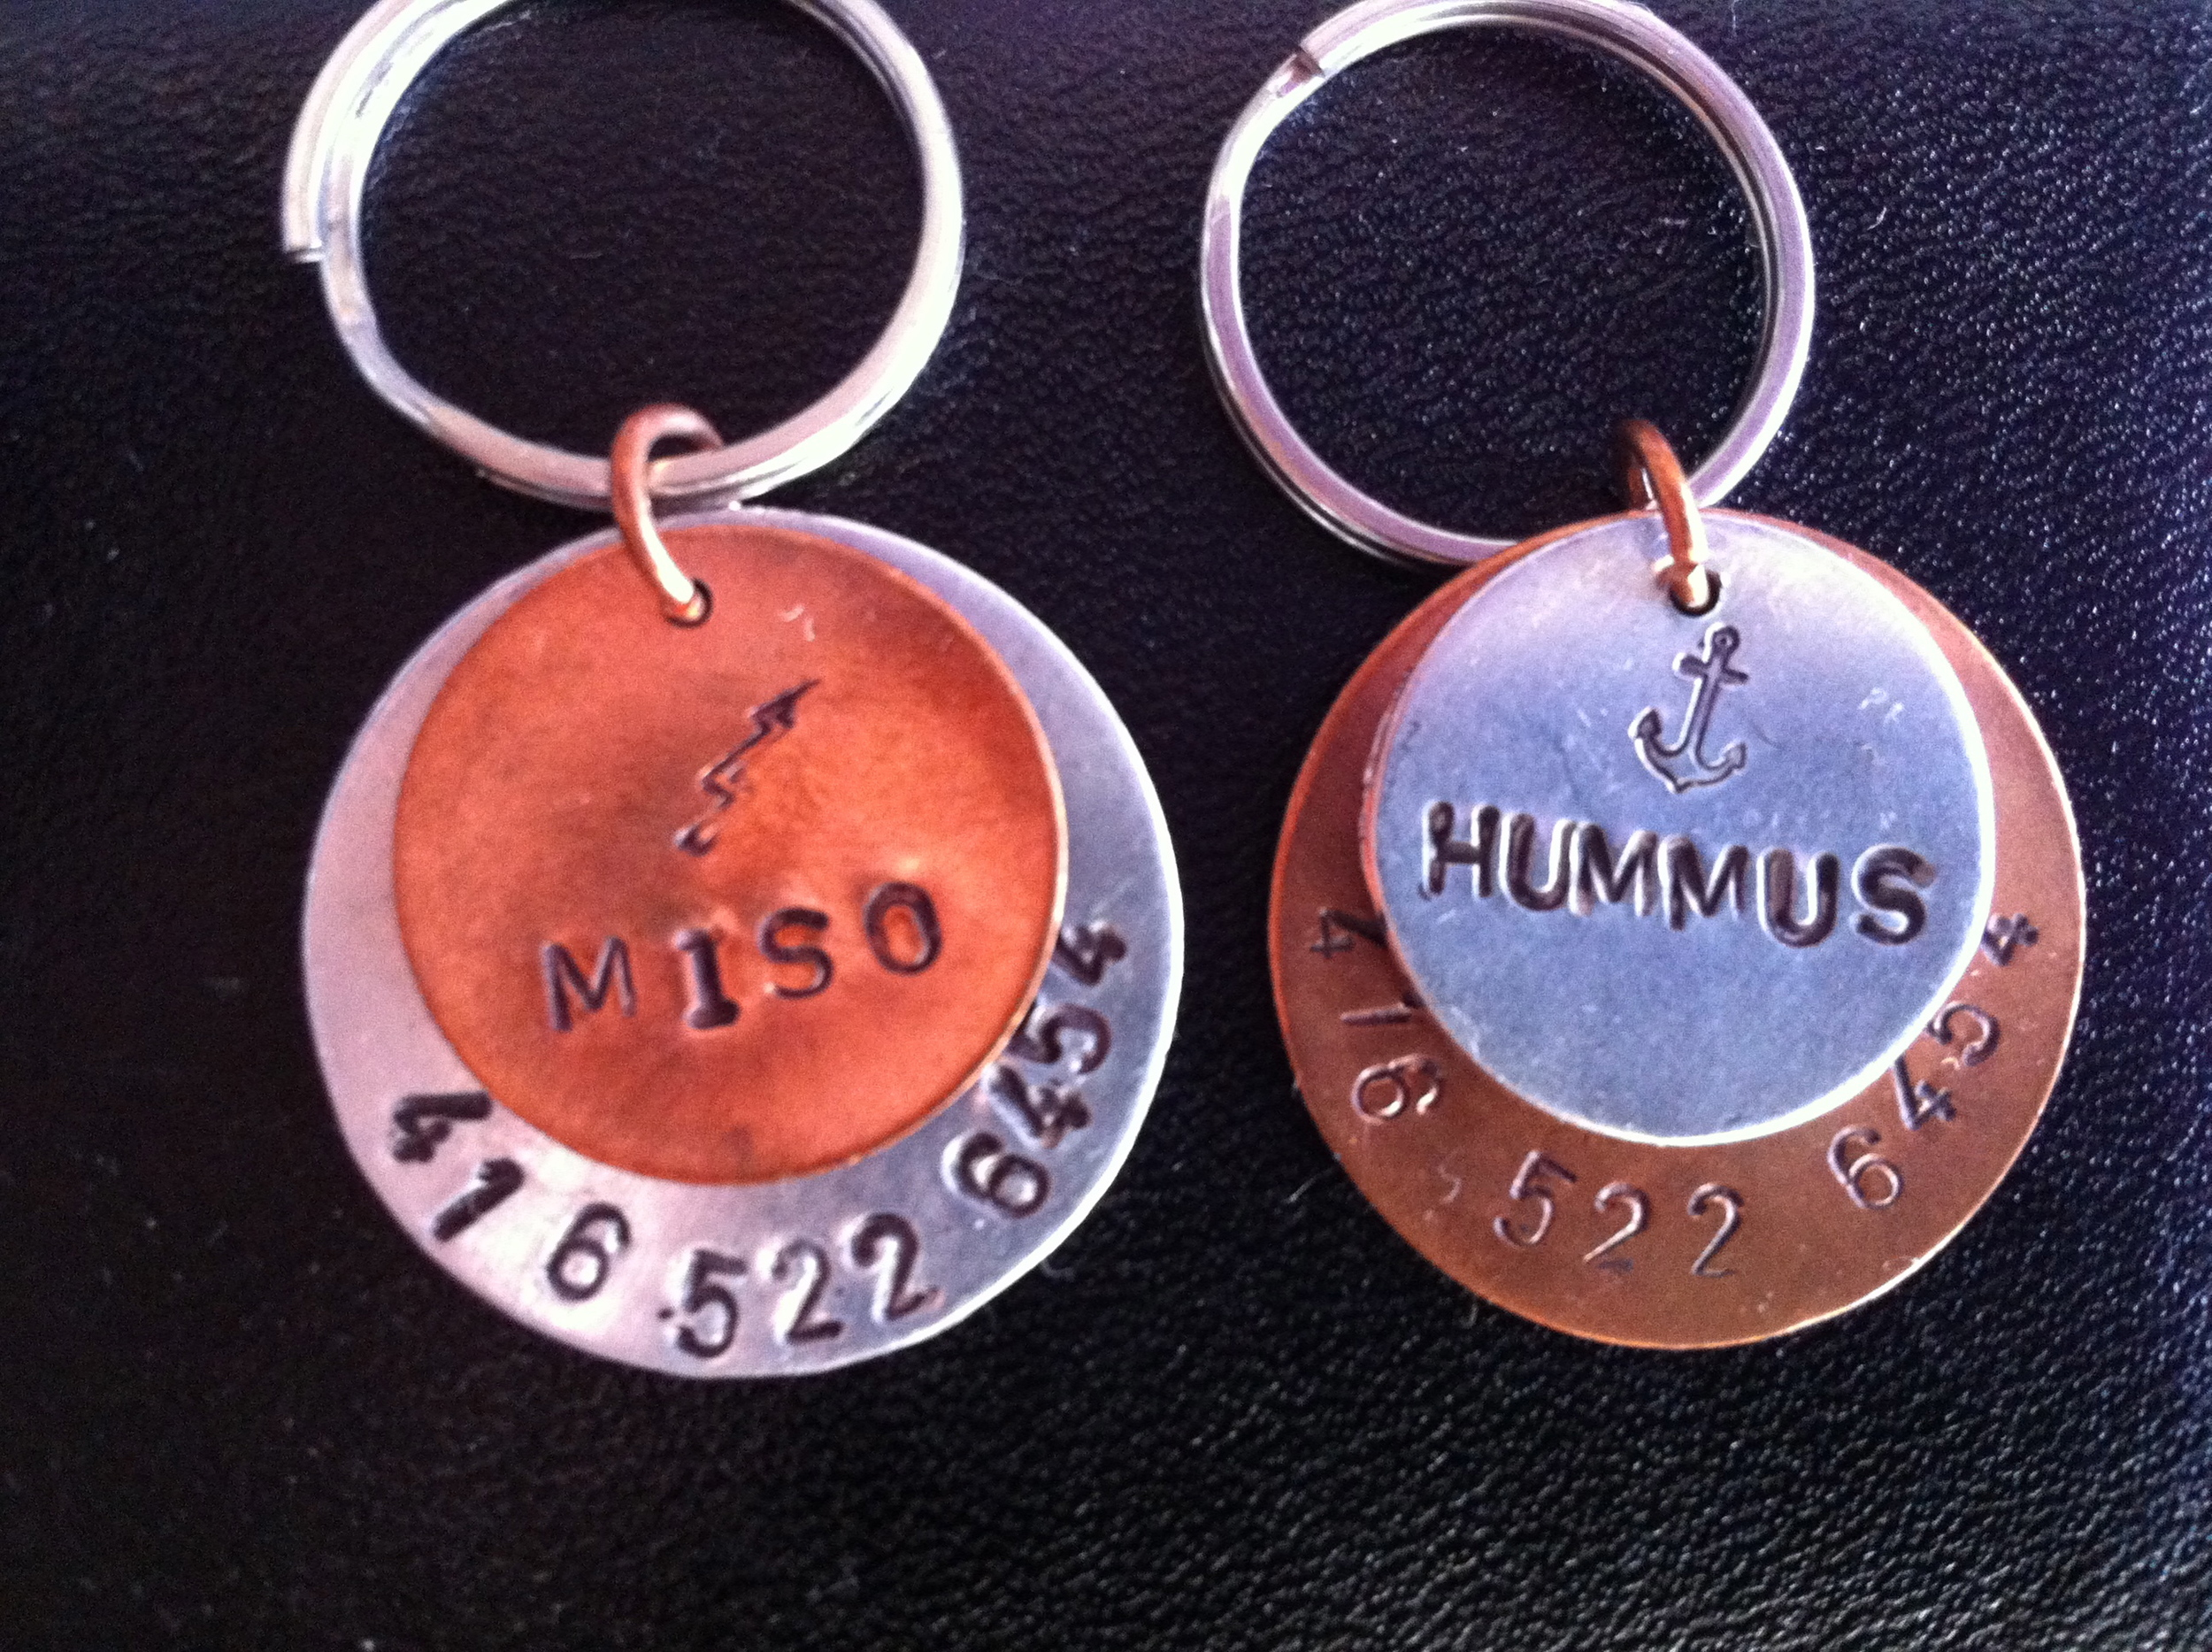 pet tags for your pooches!